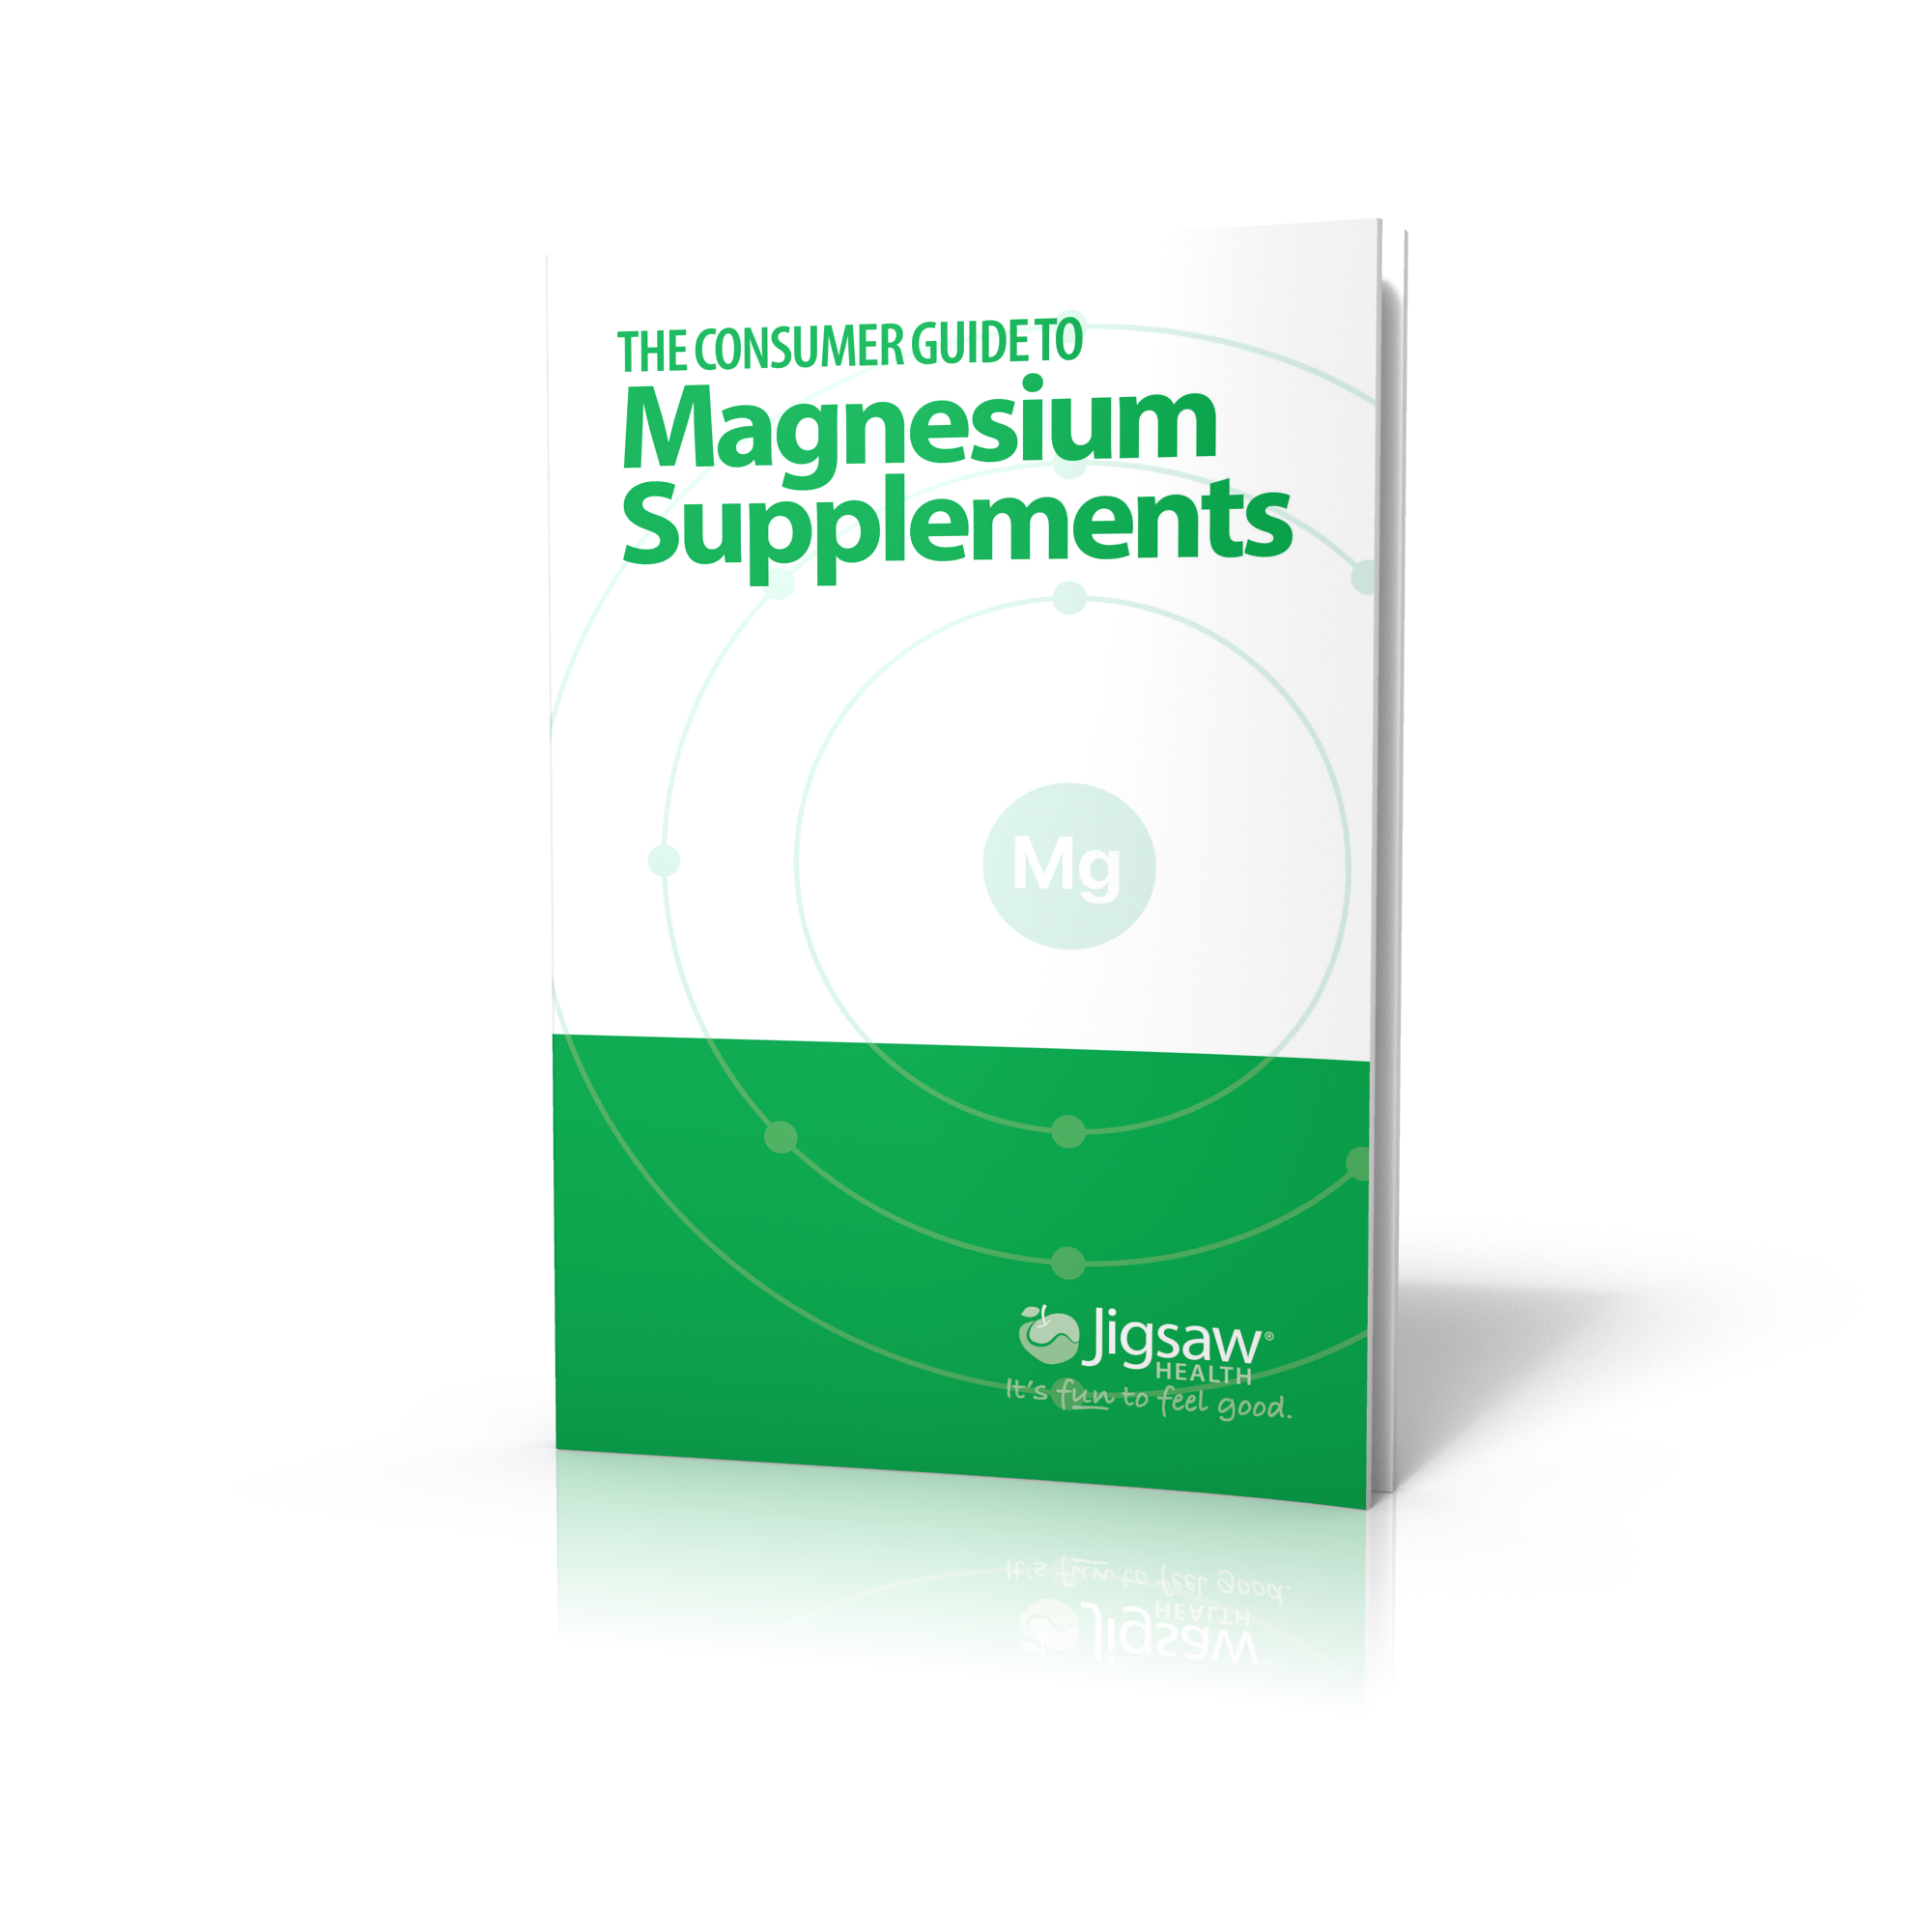 The Consumer Guide to Magnesium Supplements